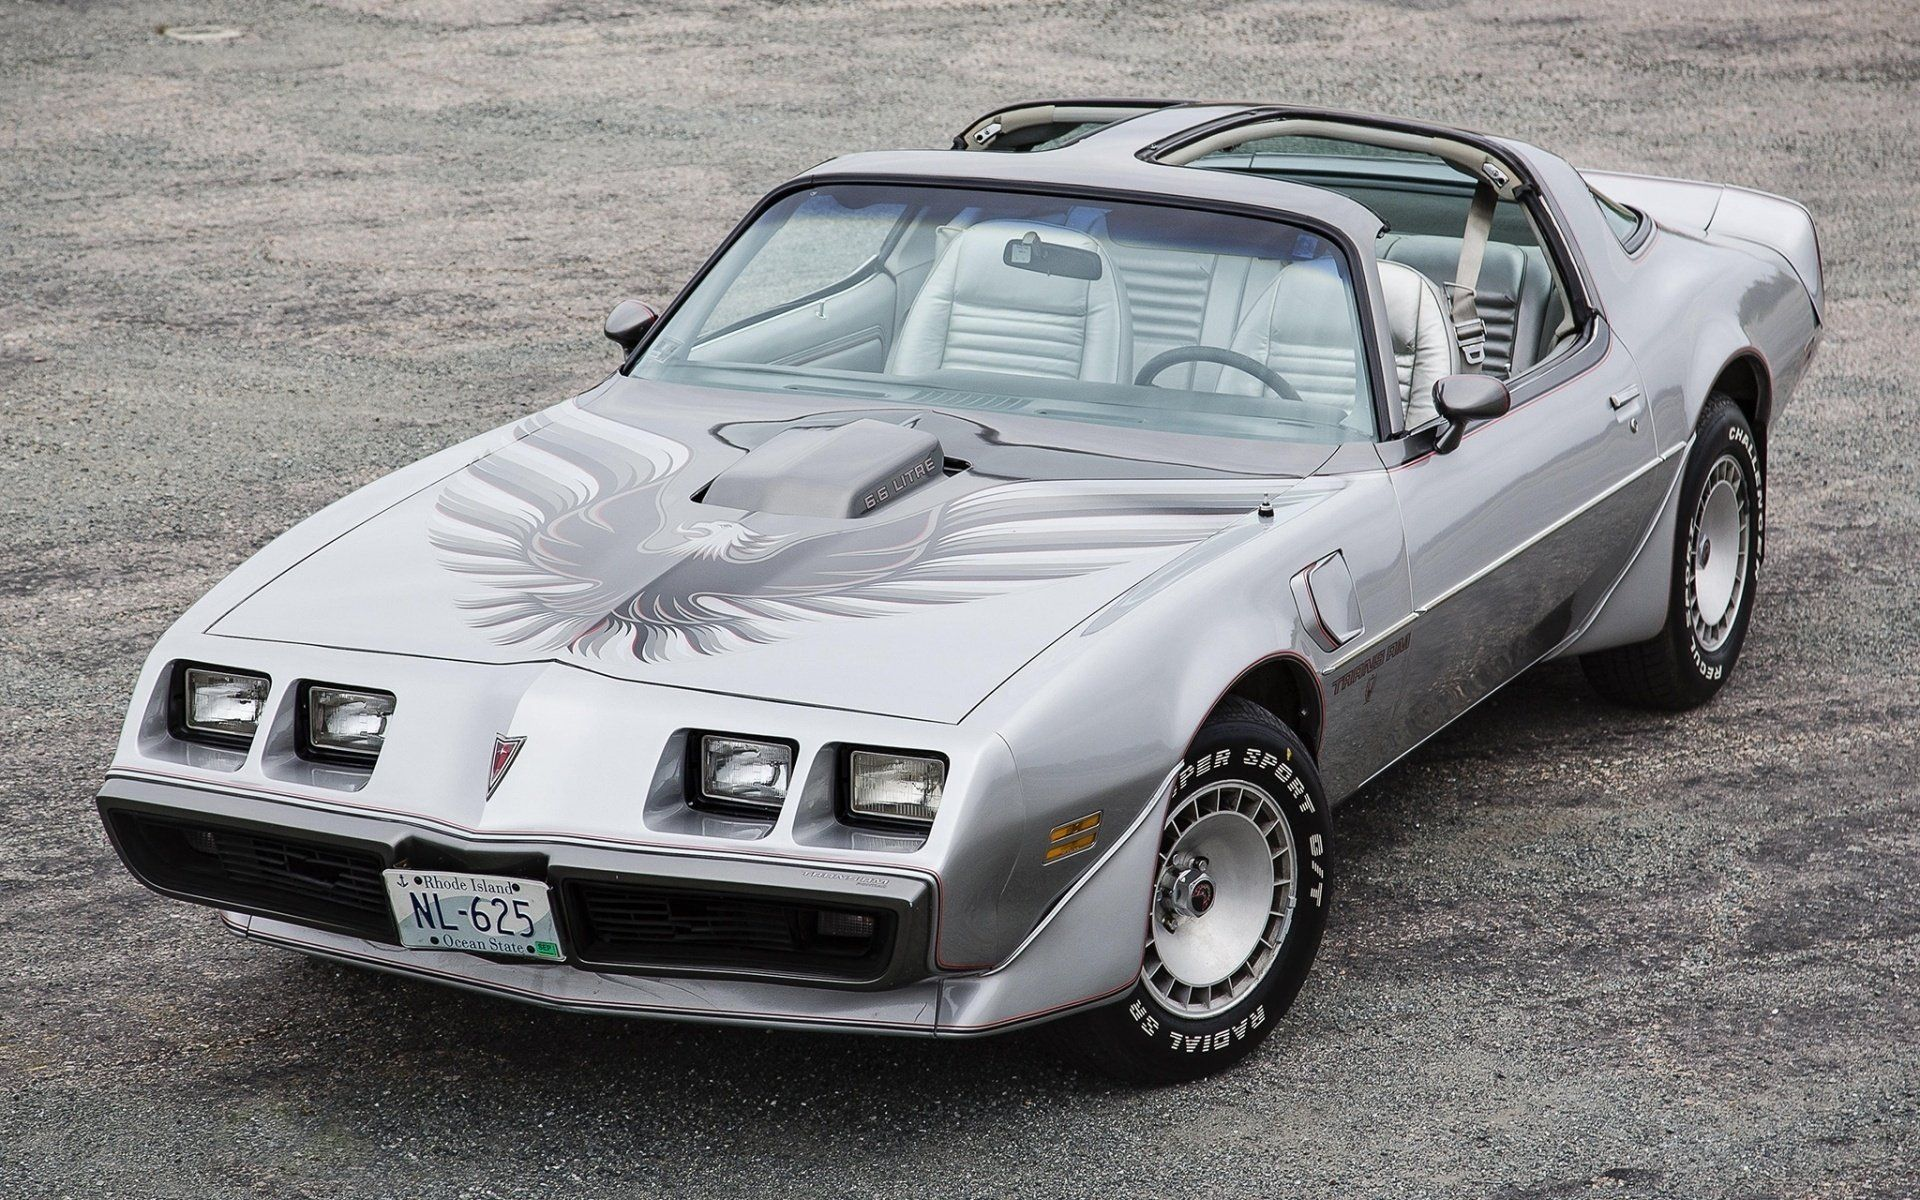 1979 Pontiac 10th Anniversary Limited Edition Trans Am T Top Coupe Pontiac Firebird Pontiac Firebird Trans Am Trans Am